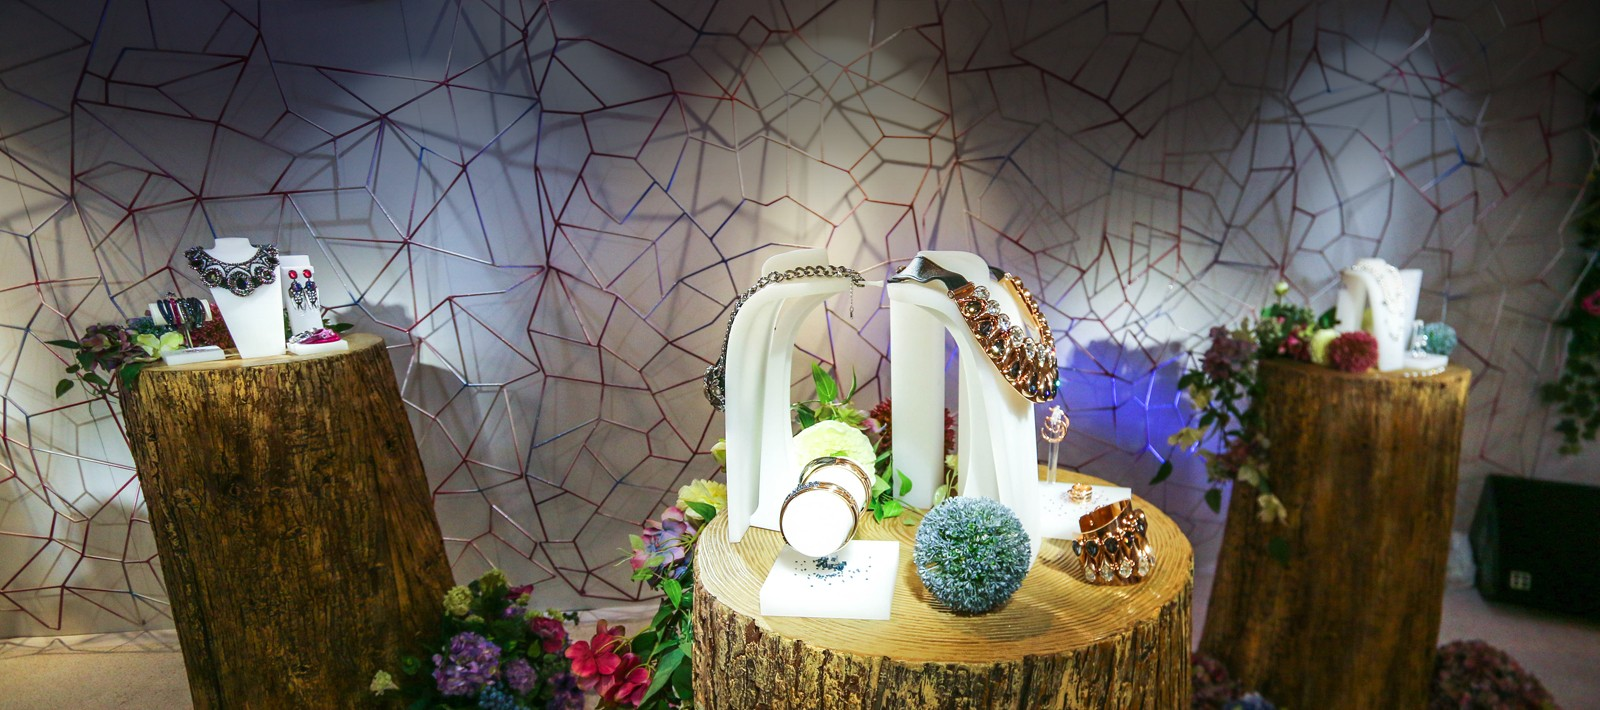 Jewelry exhibition design for Swarovski